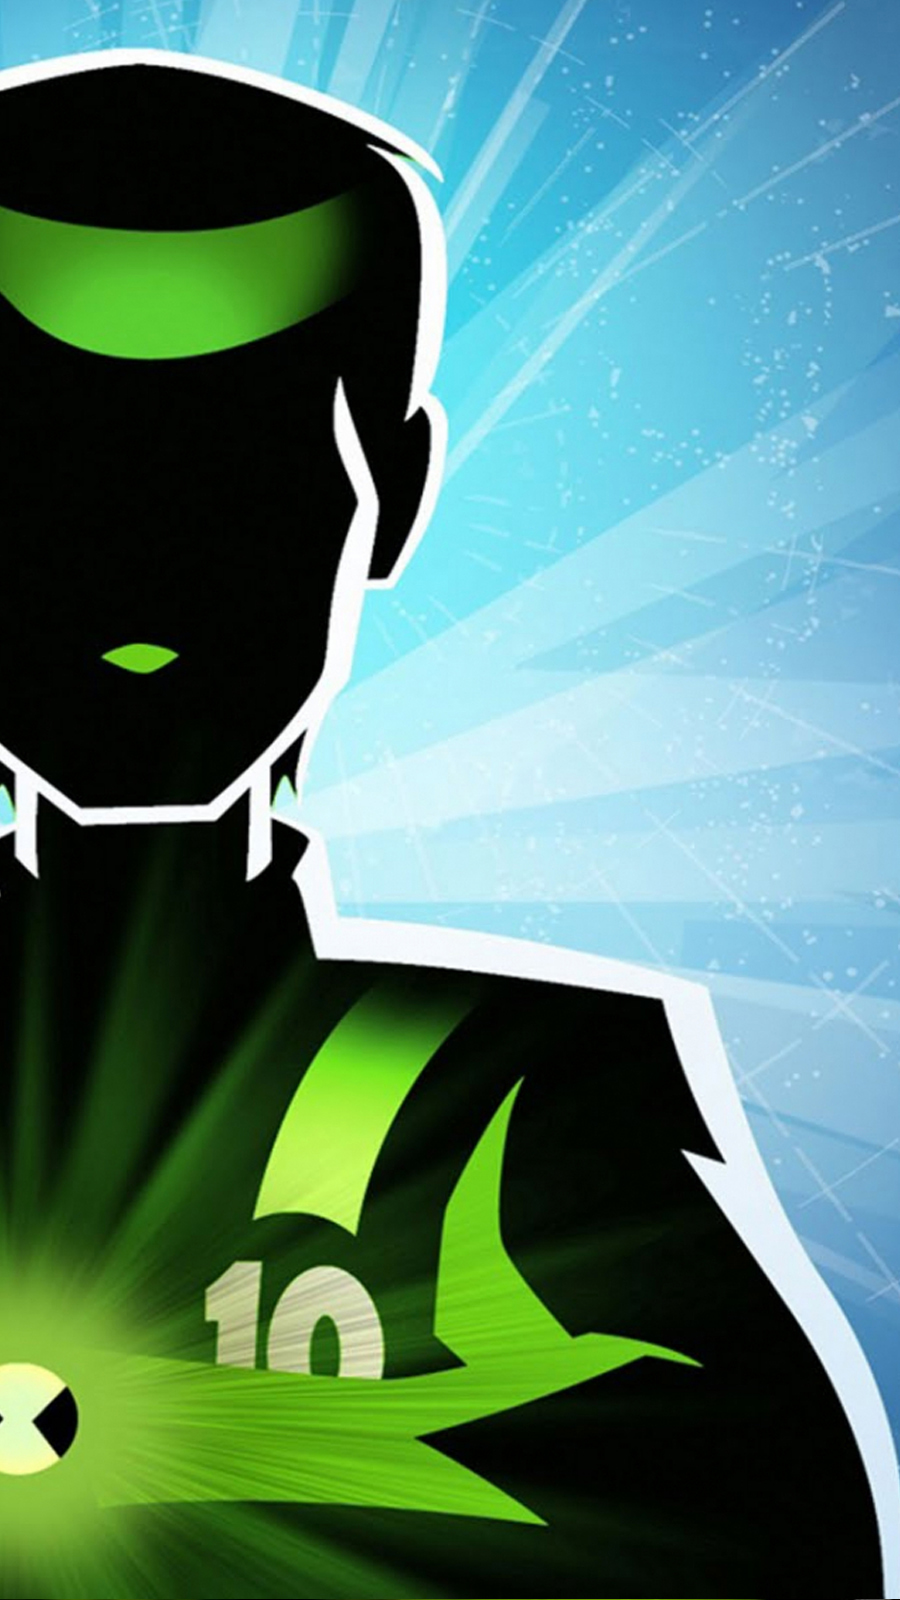 Ben10 HD Wallpapers For Mobile Device